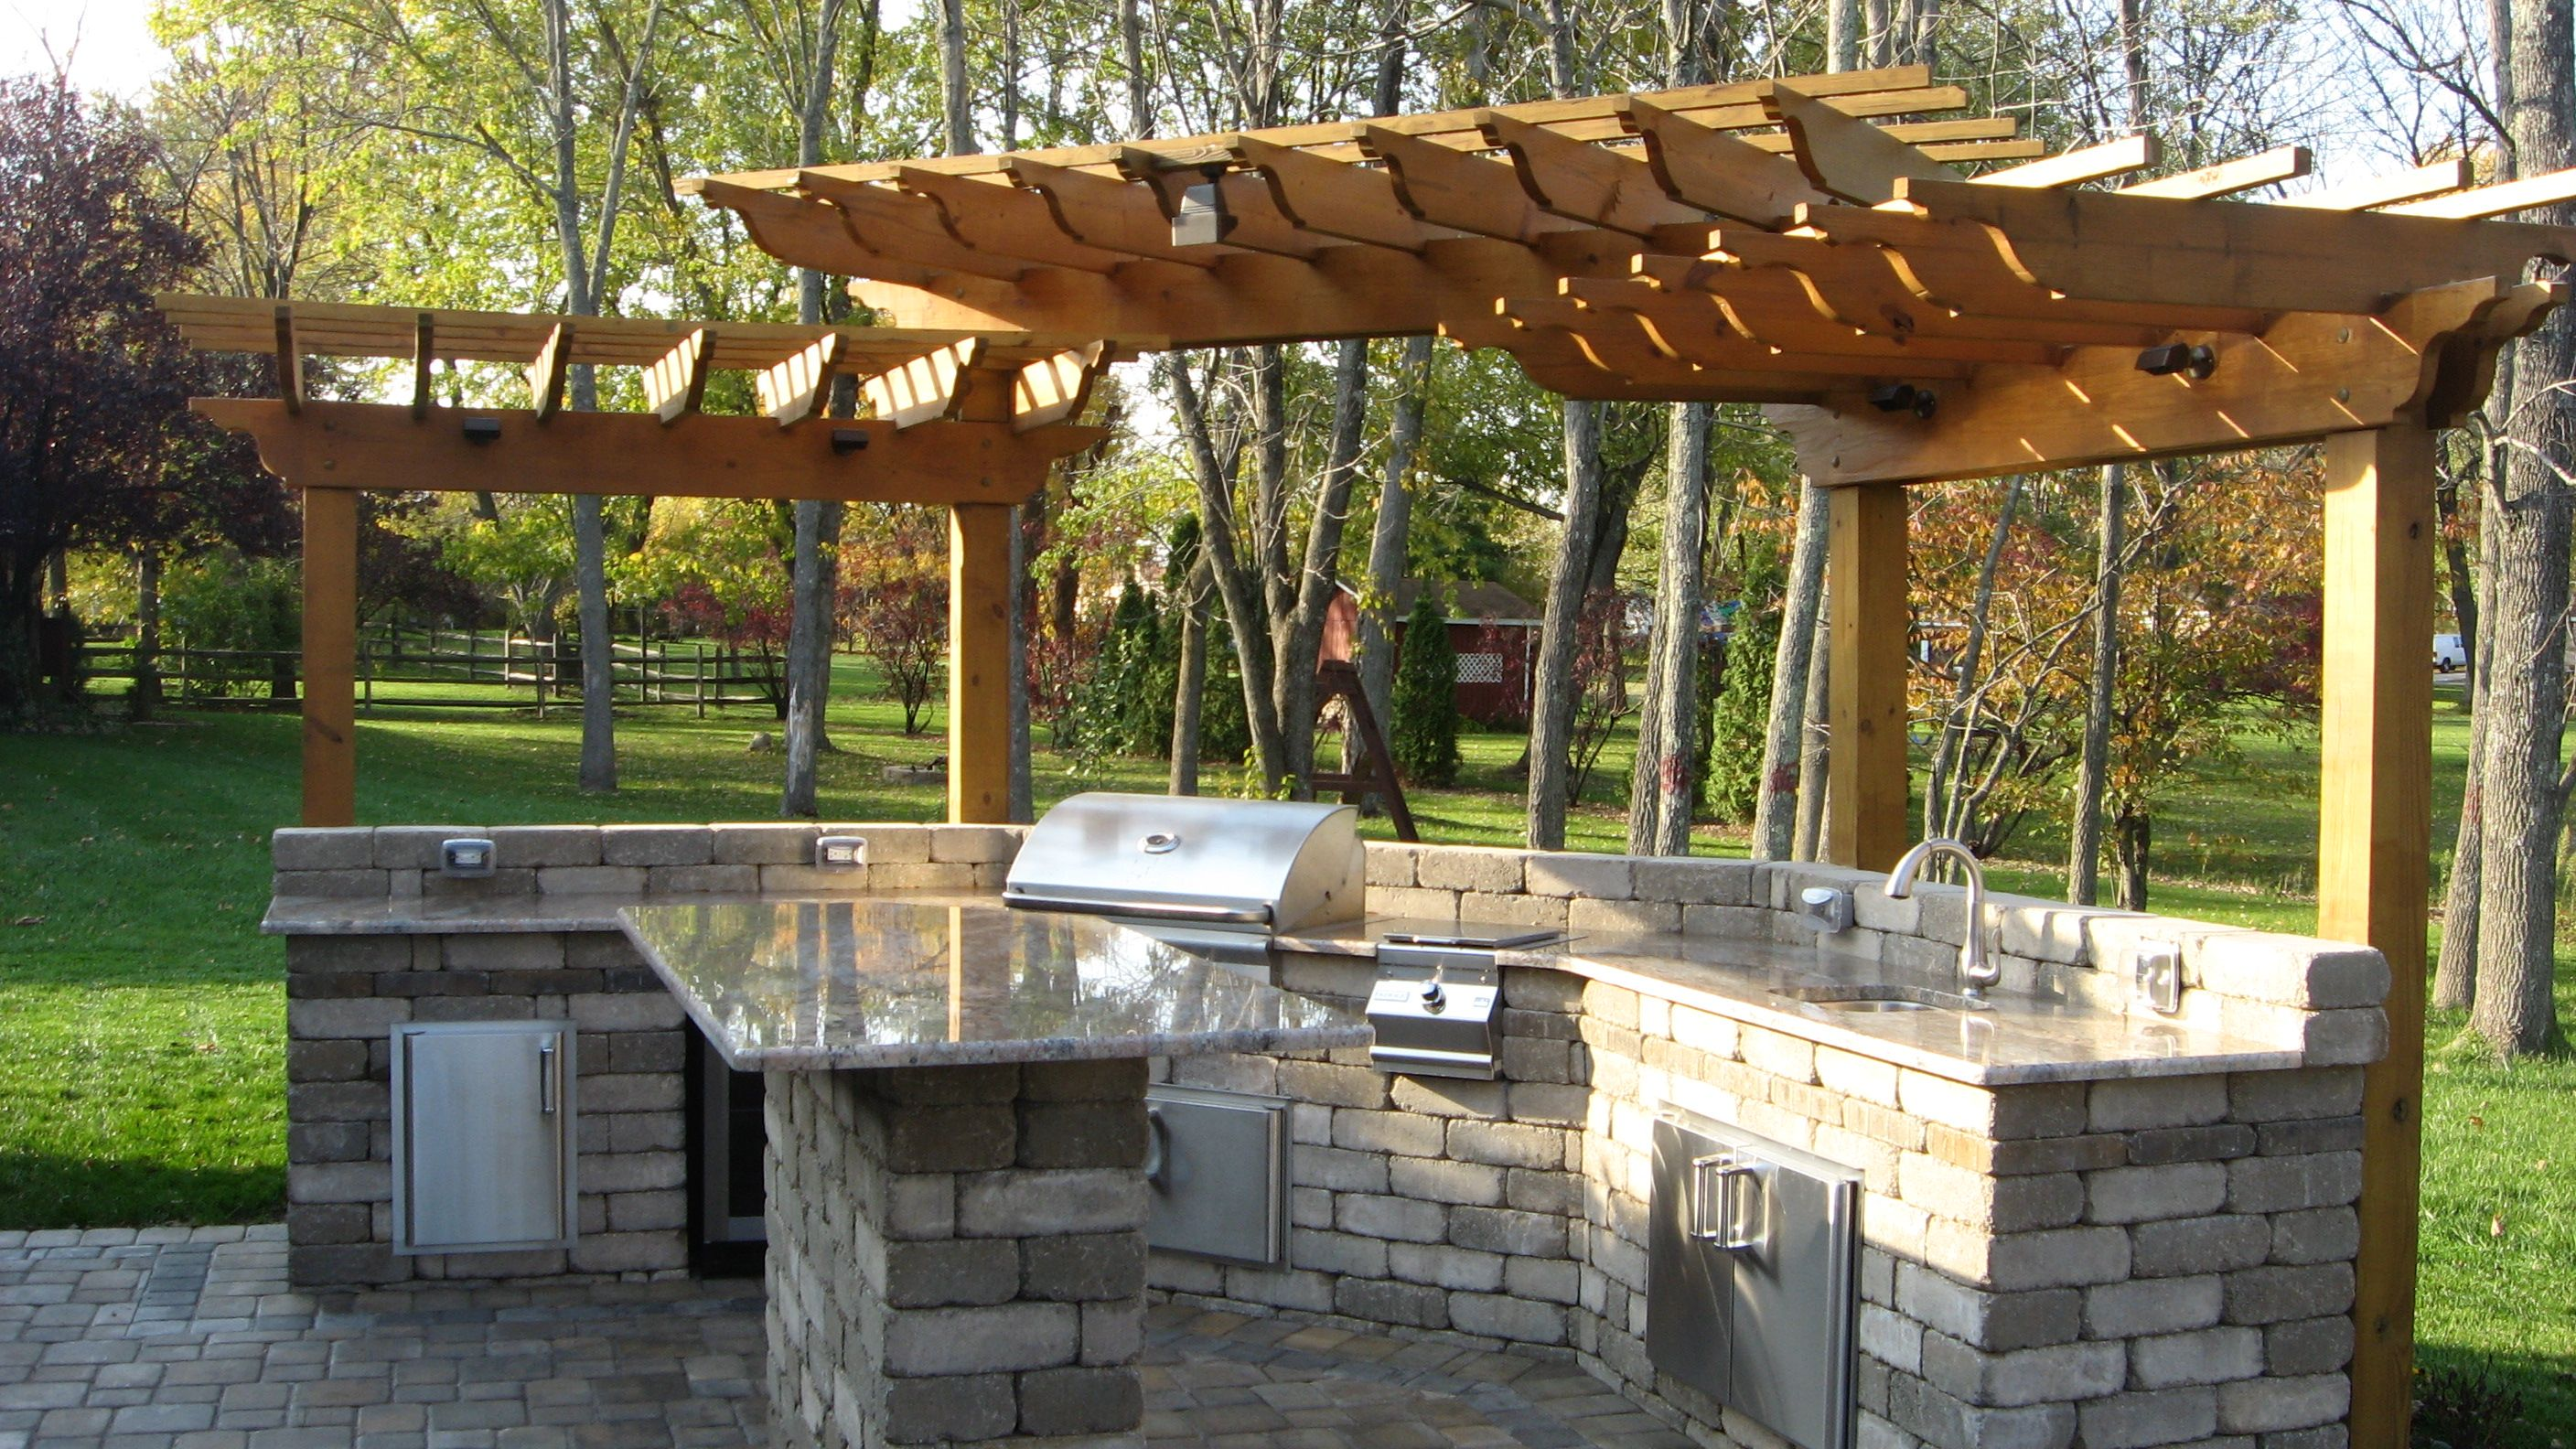 outdoor grill islands | Island Grill covers | Outdoor ... on Backyard Patio Grill Island id=24115